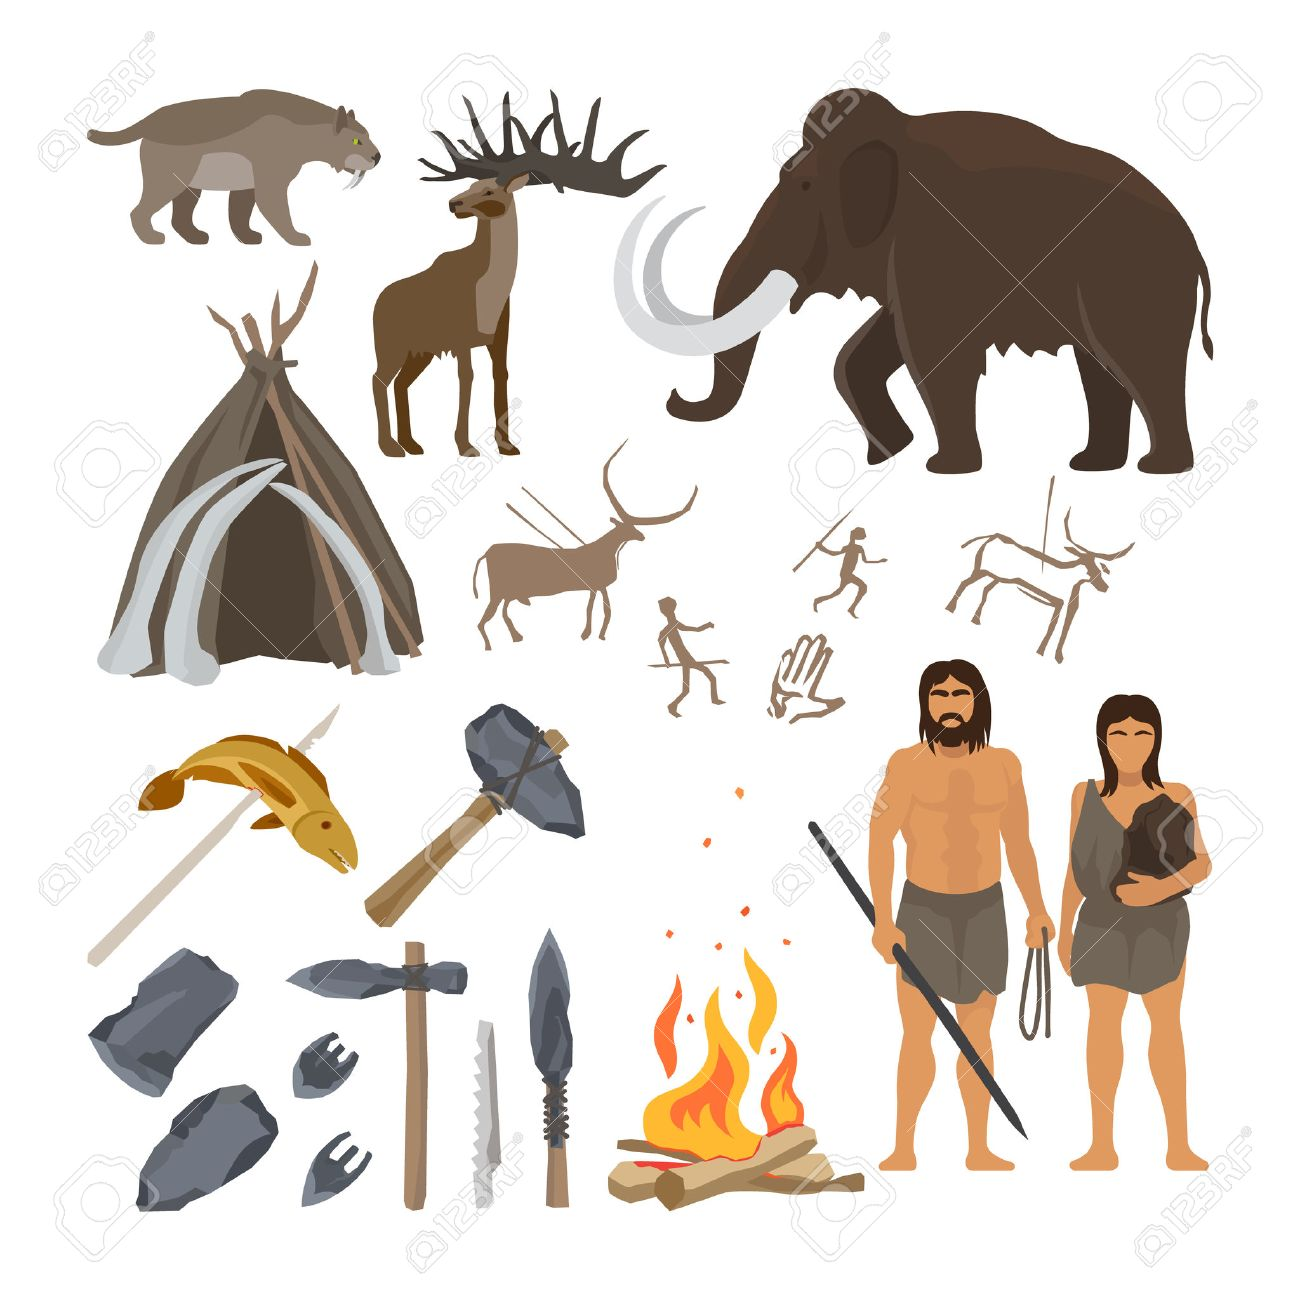 Stone age vector isolated on white background. Caveman or troglodyte, mammoth and bonfire, prehistoric aged primitive tools - 64138493